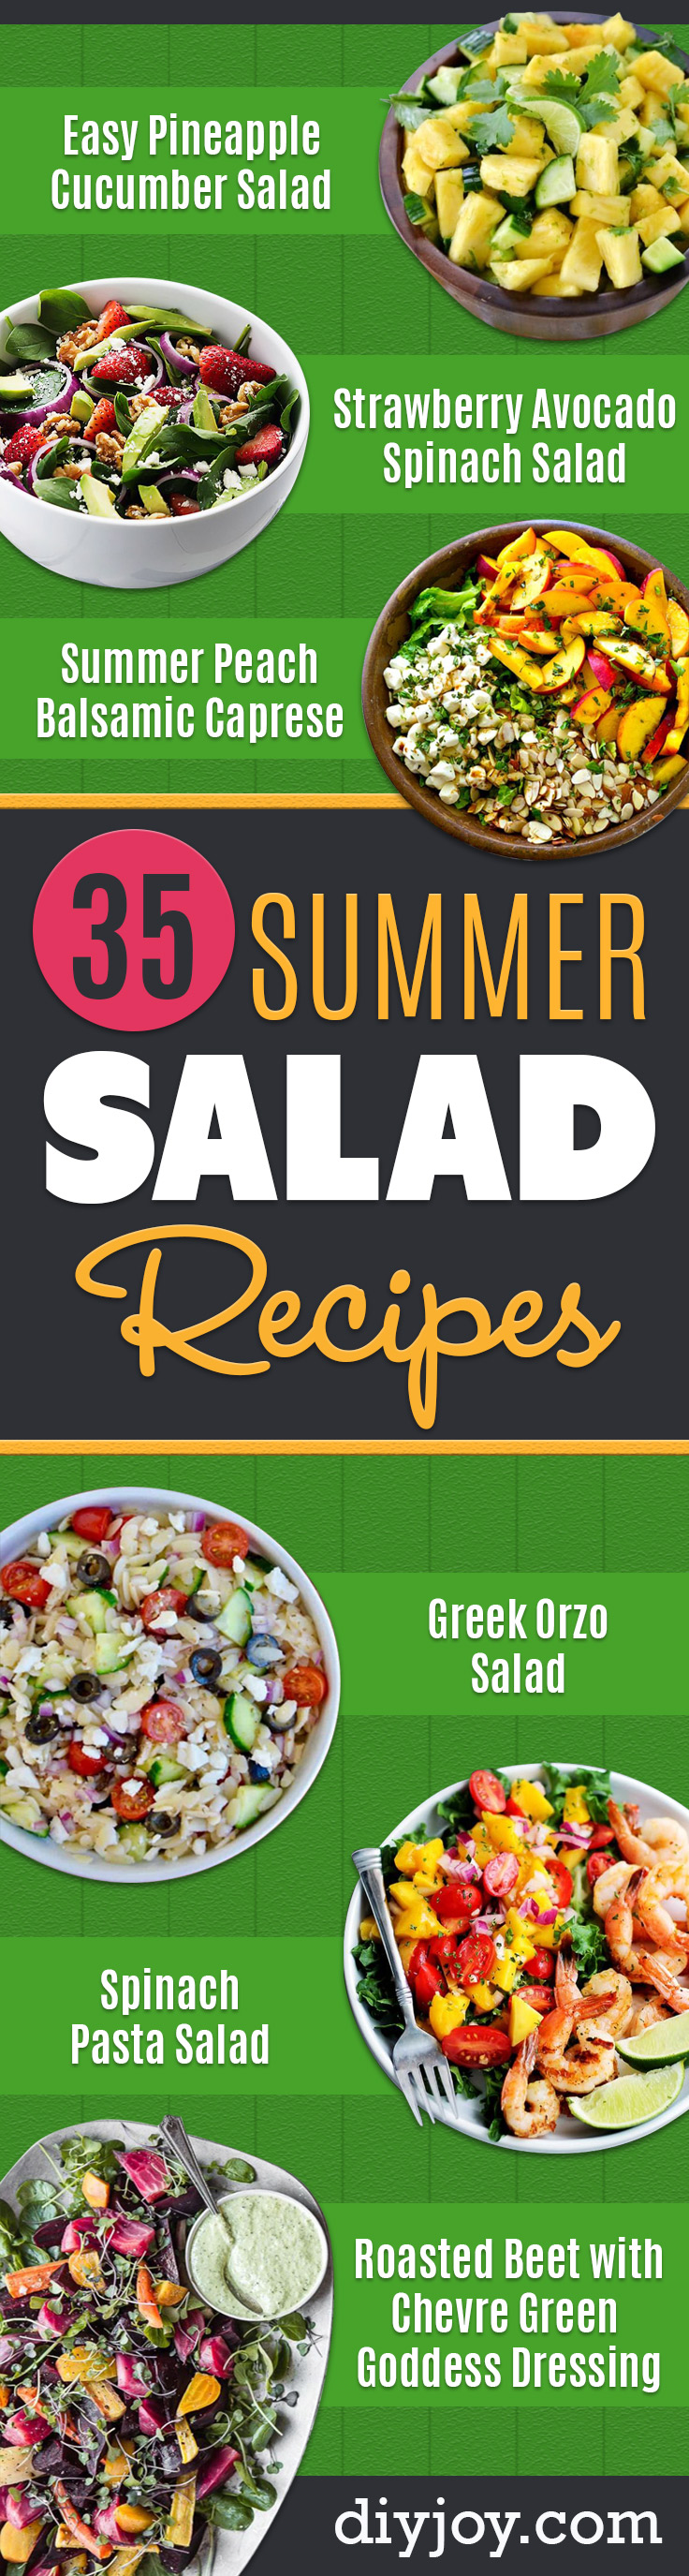 Summer Salad Recipes - Easy Salads to Make for Summer Dinners, Picnic, Barbecue and Take To Work Lunches - Grilled Foods, Fruits, Chicken, Tuna and and Shrimp Salad - Healthy Meals on A Budget - Vegetarian and Vegan Recipe Ideas - Homemade Salad Dressings and Fresh Ingredients make the Best Salads #salads #saladrecipes #lunchrecipes #recipes #summer http://diyjoy.com/summer-salad-recipes